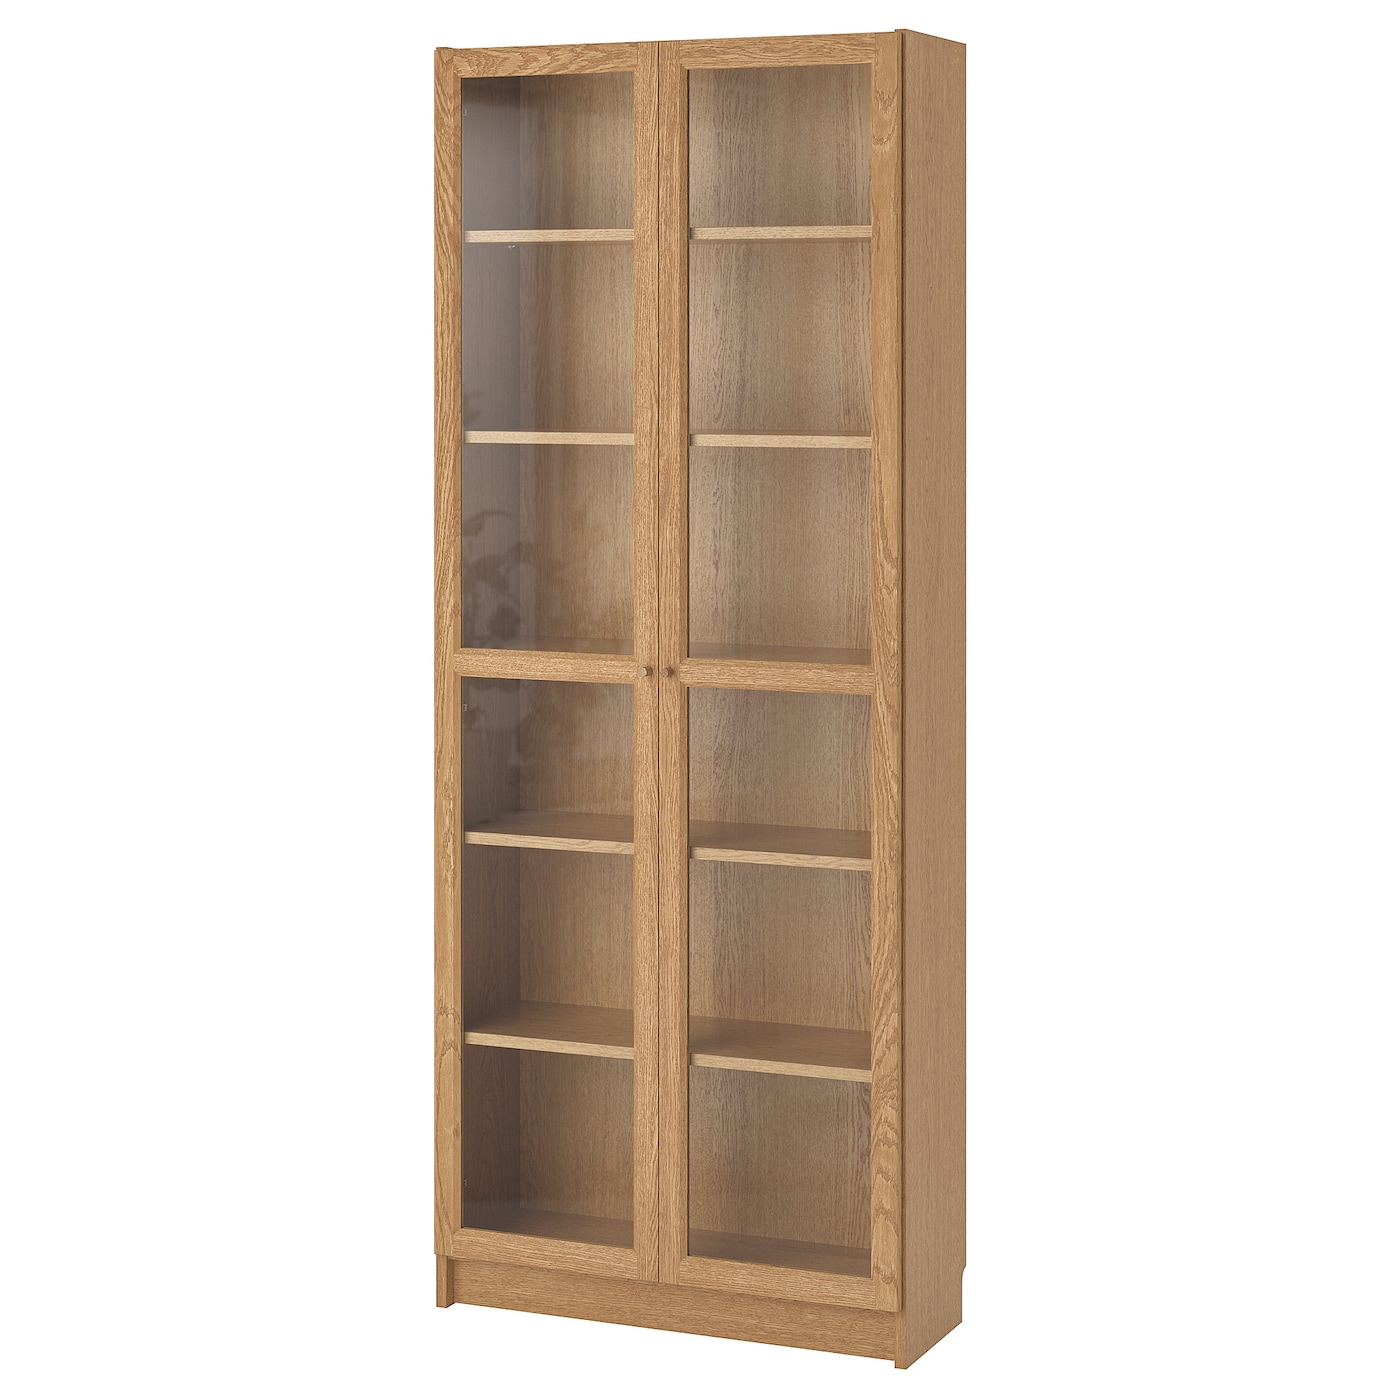 Librer as compra online ikea for Mueble libreria ikea